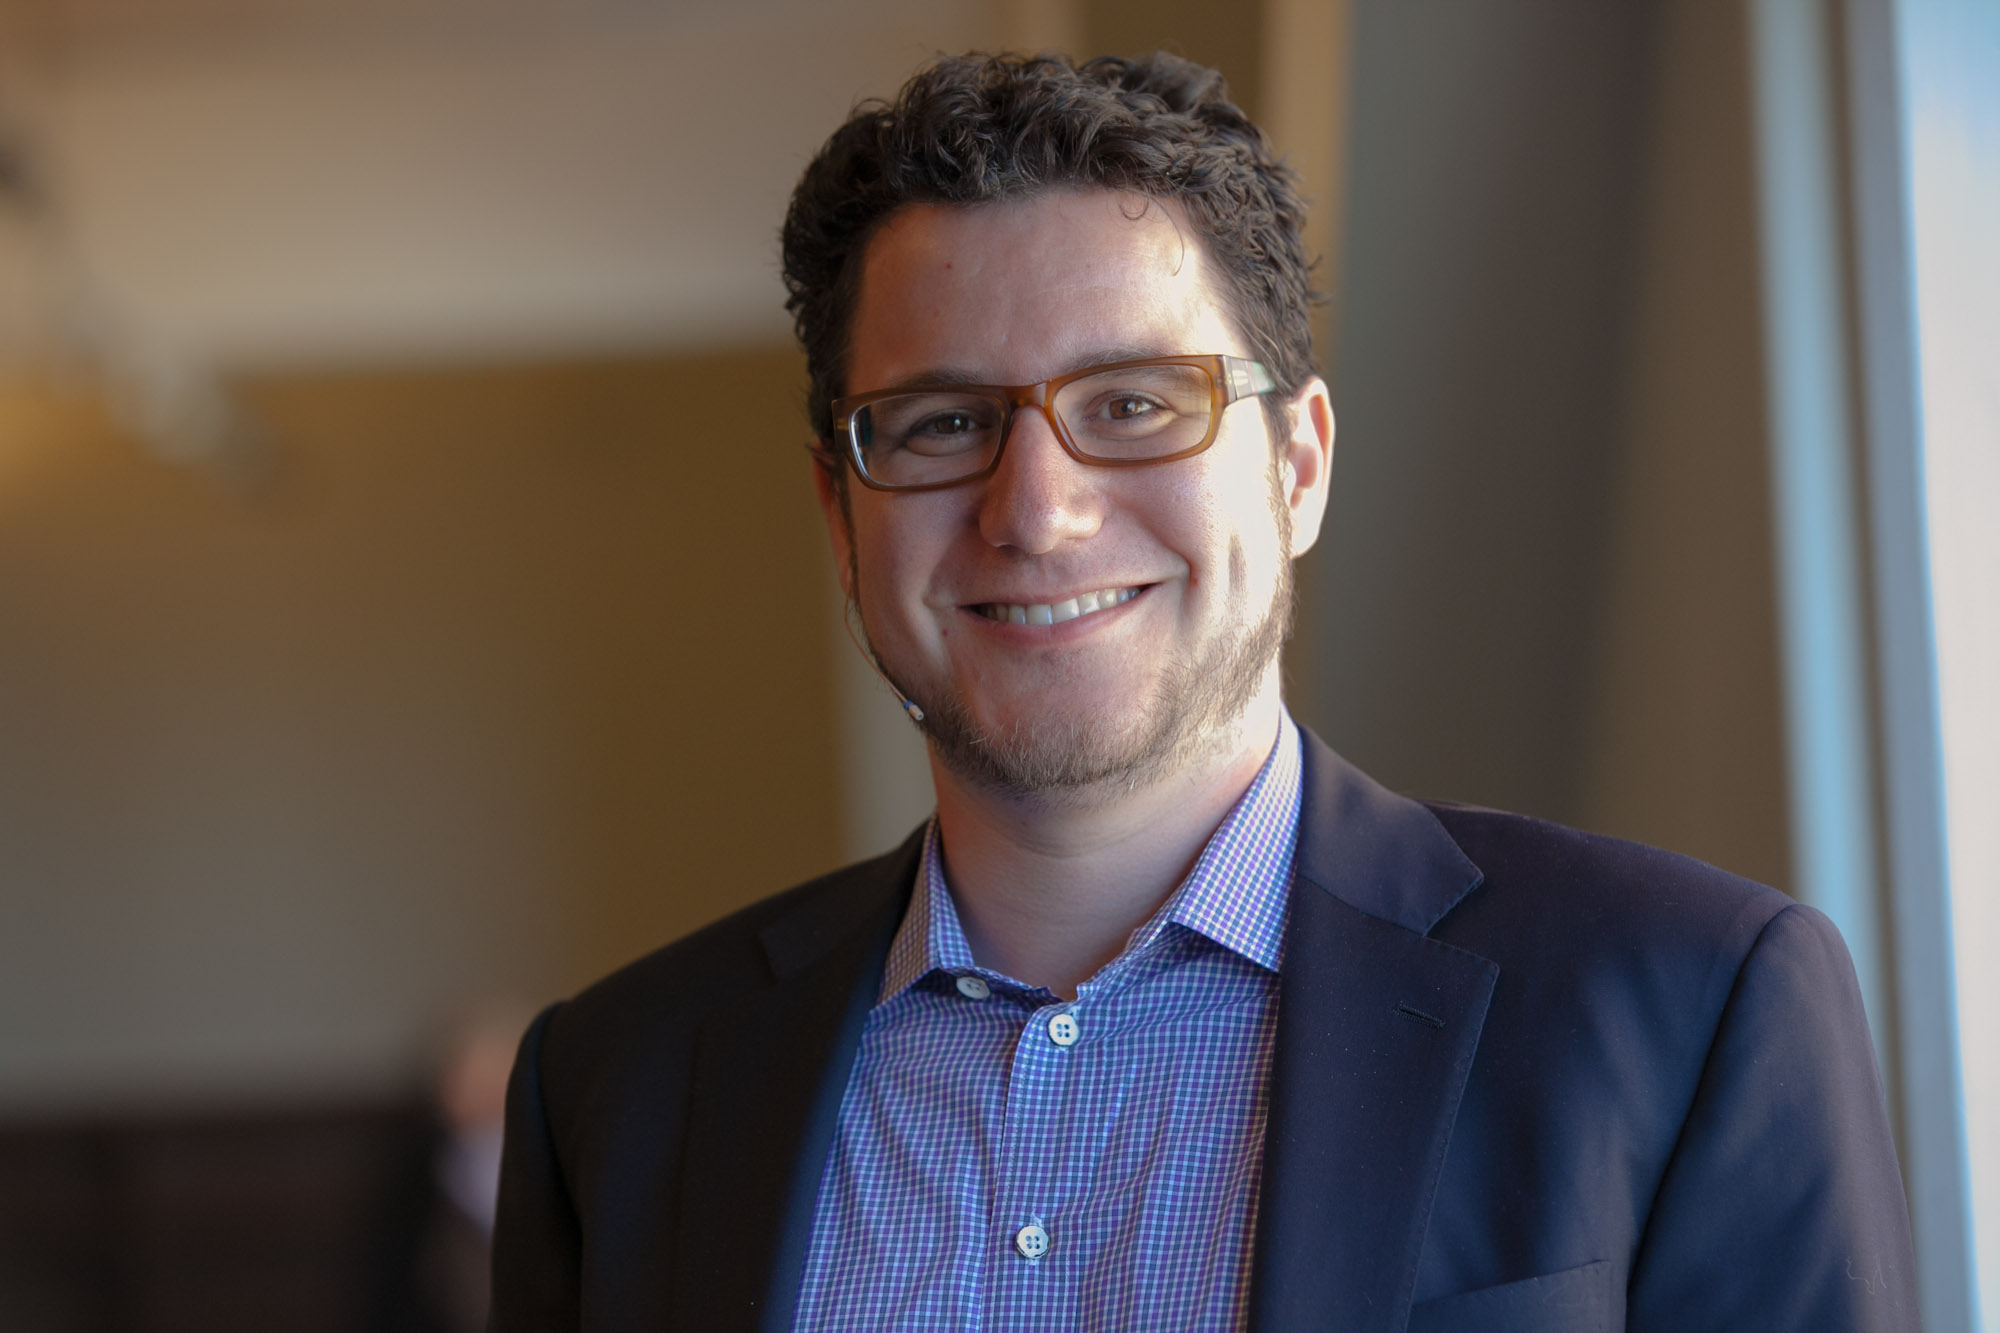 Author Eric Ries, founder of the Lean Startup conference